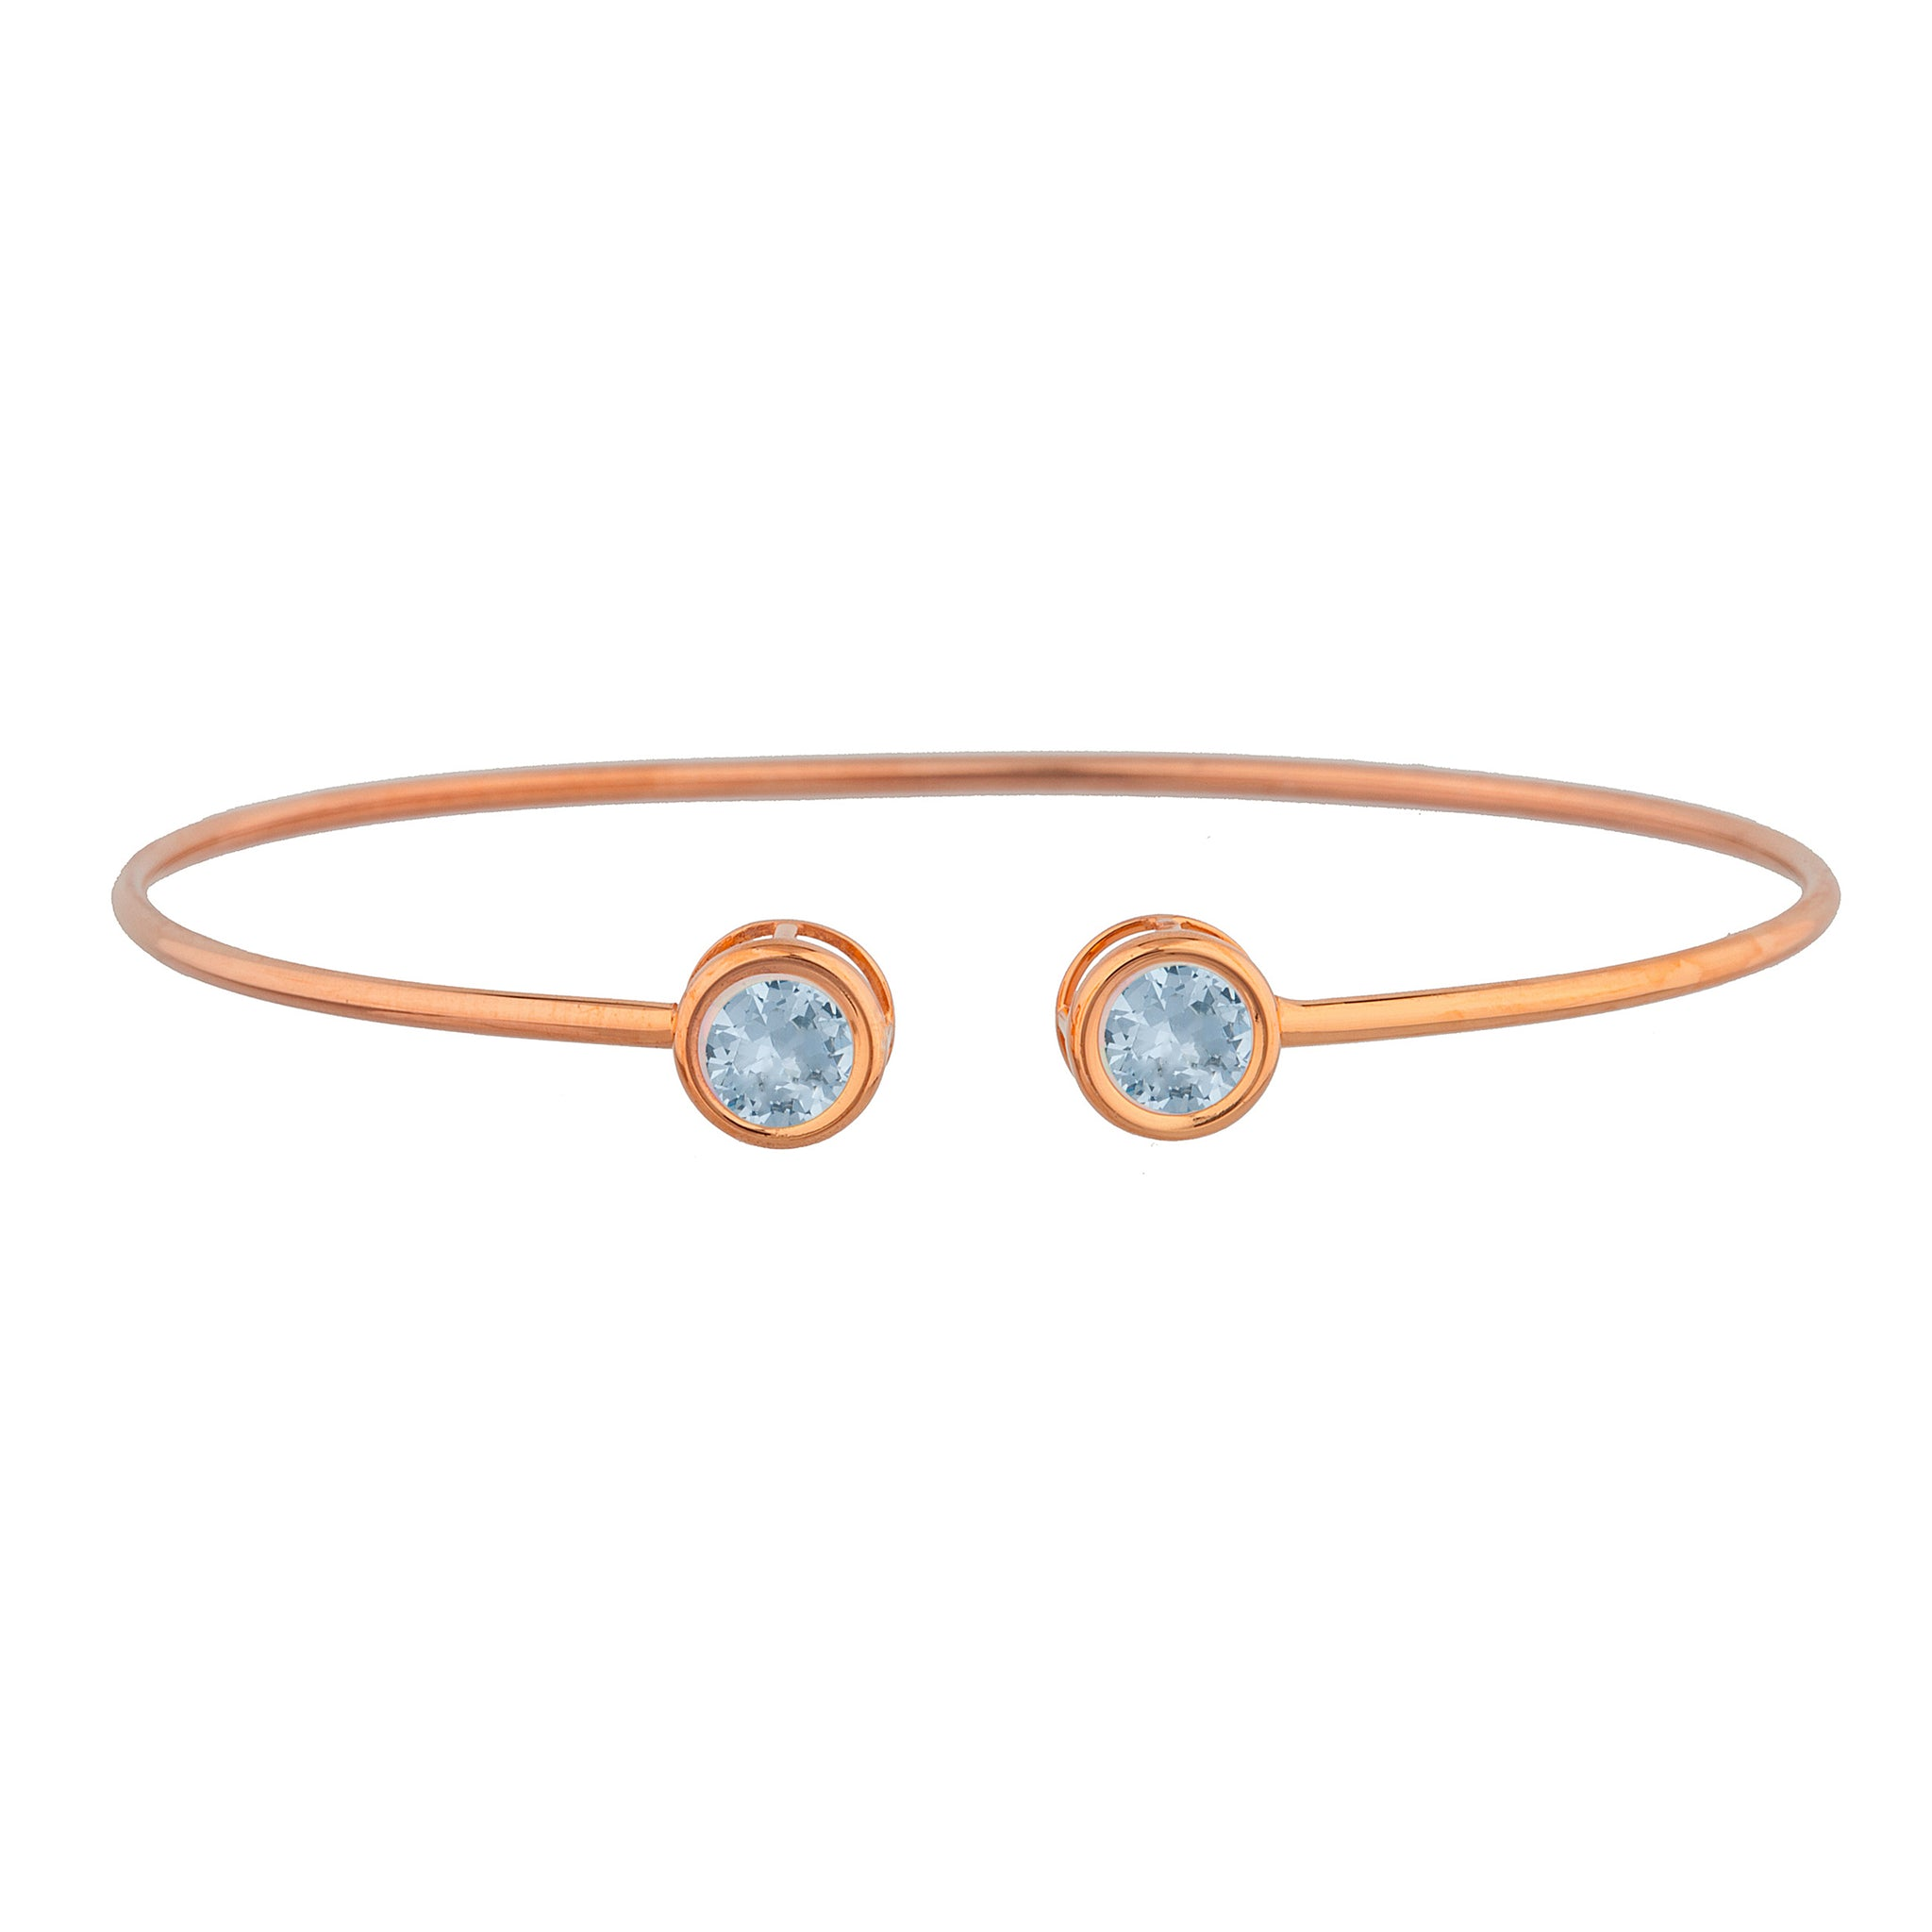 14Kt Rose Gold Plated Genuine Aquamarine Round Bezel Bangle Bracelet